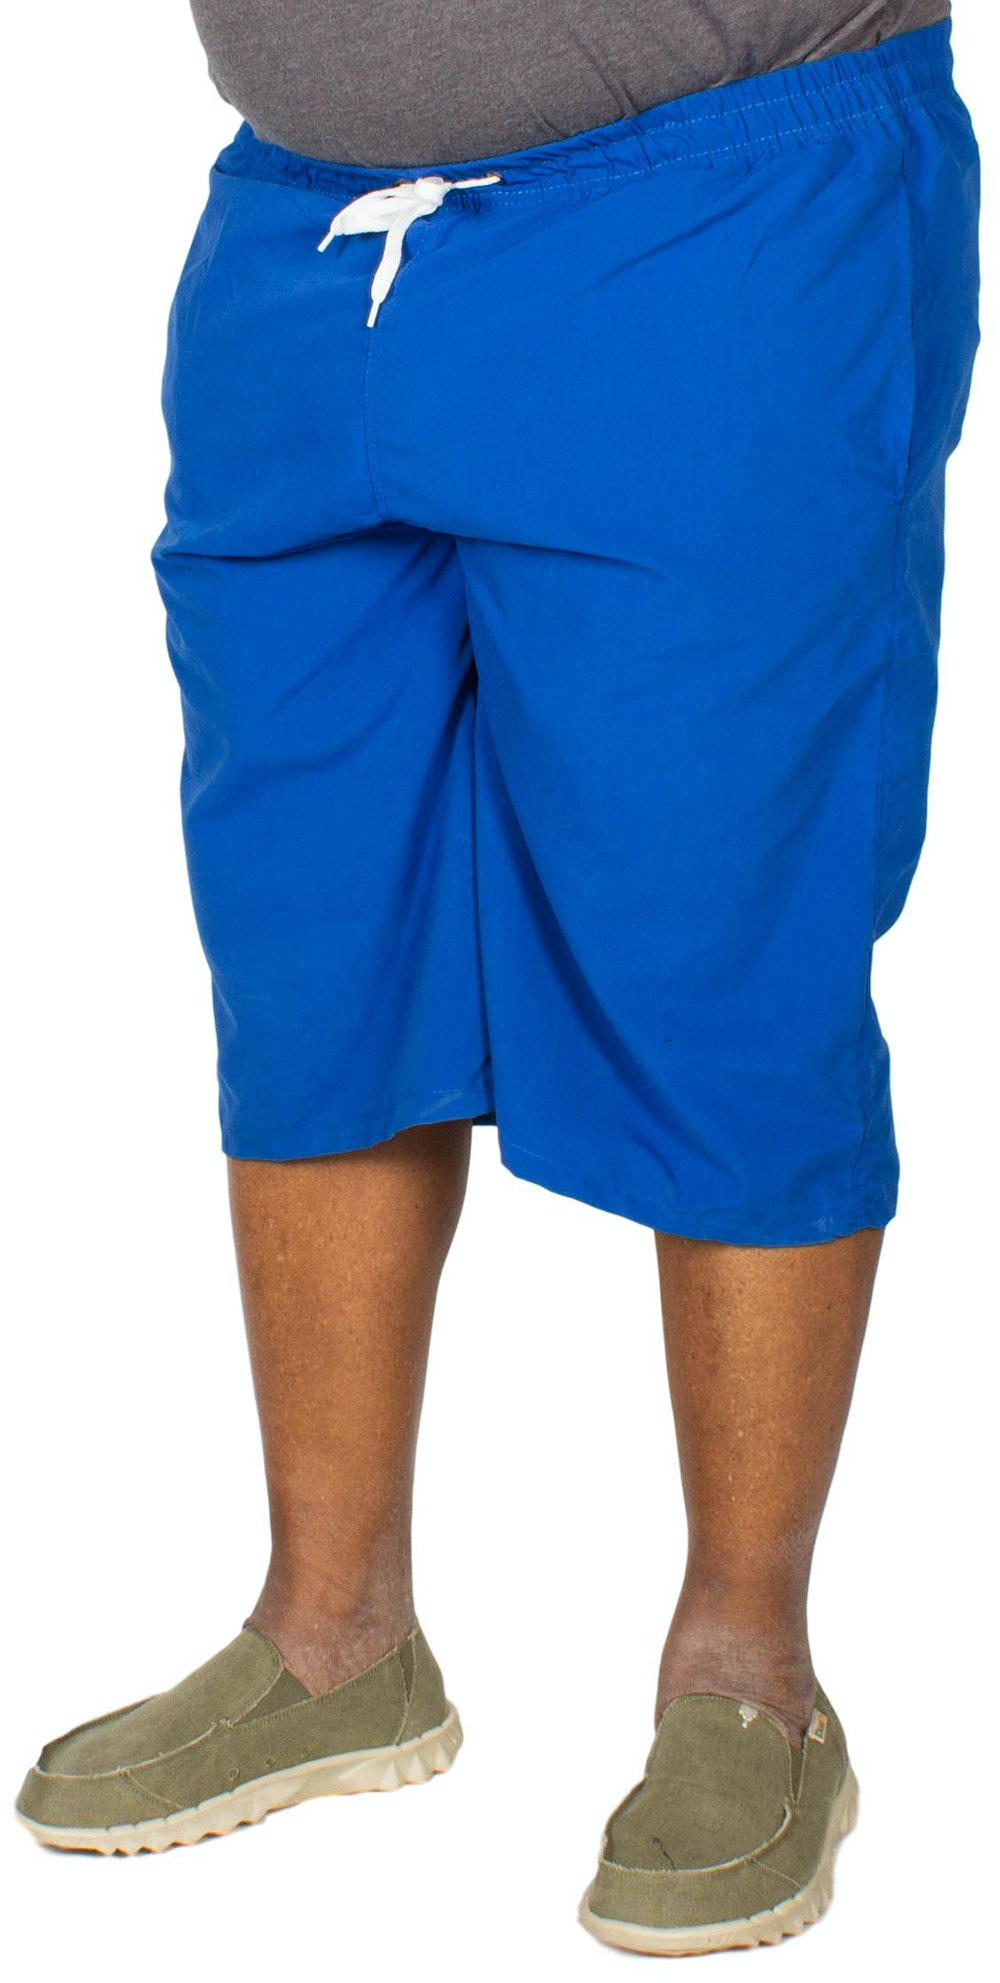 Fitzgerald Derek Swim Short Royal Blue